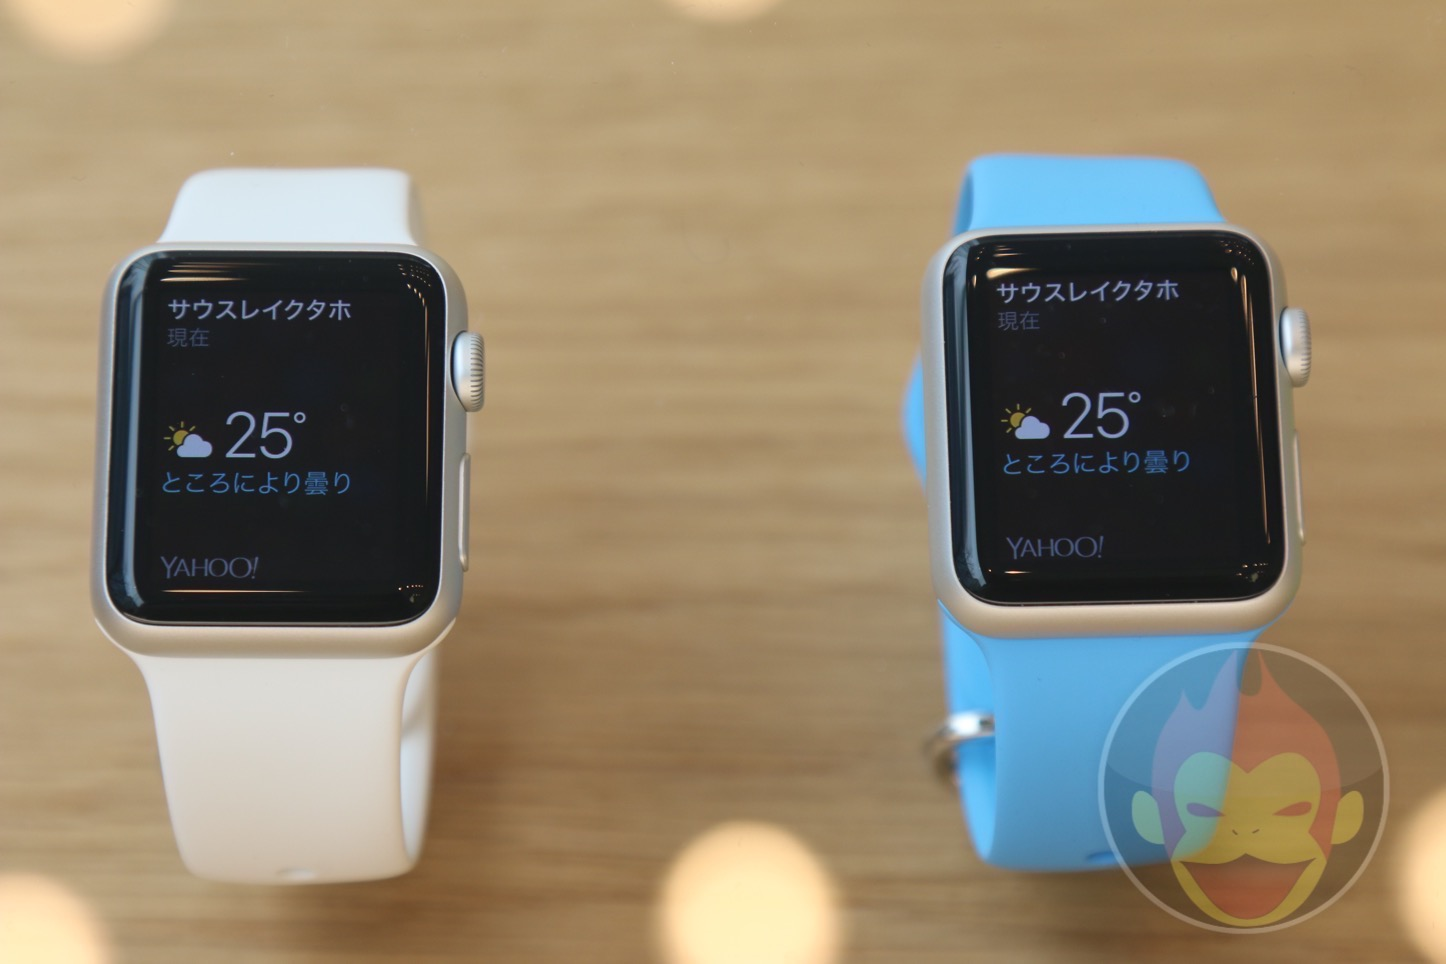 Apple-Watch-Omotesando-22.JPG